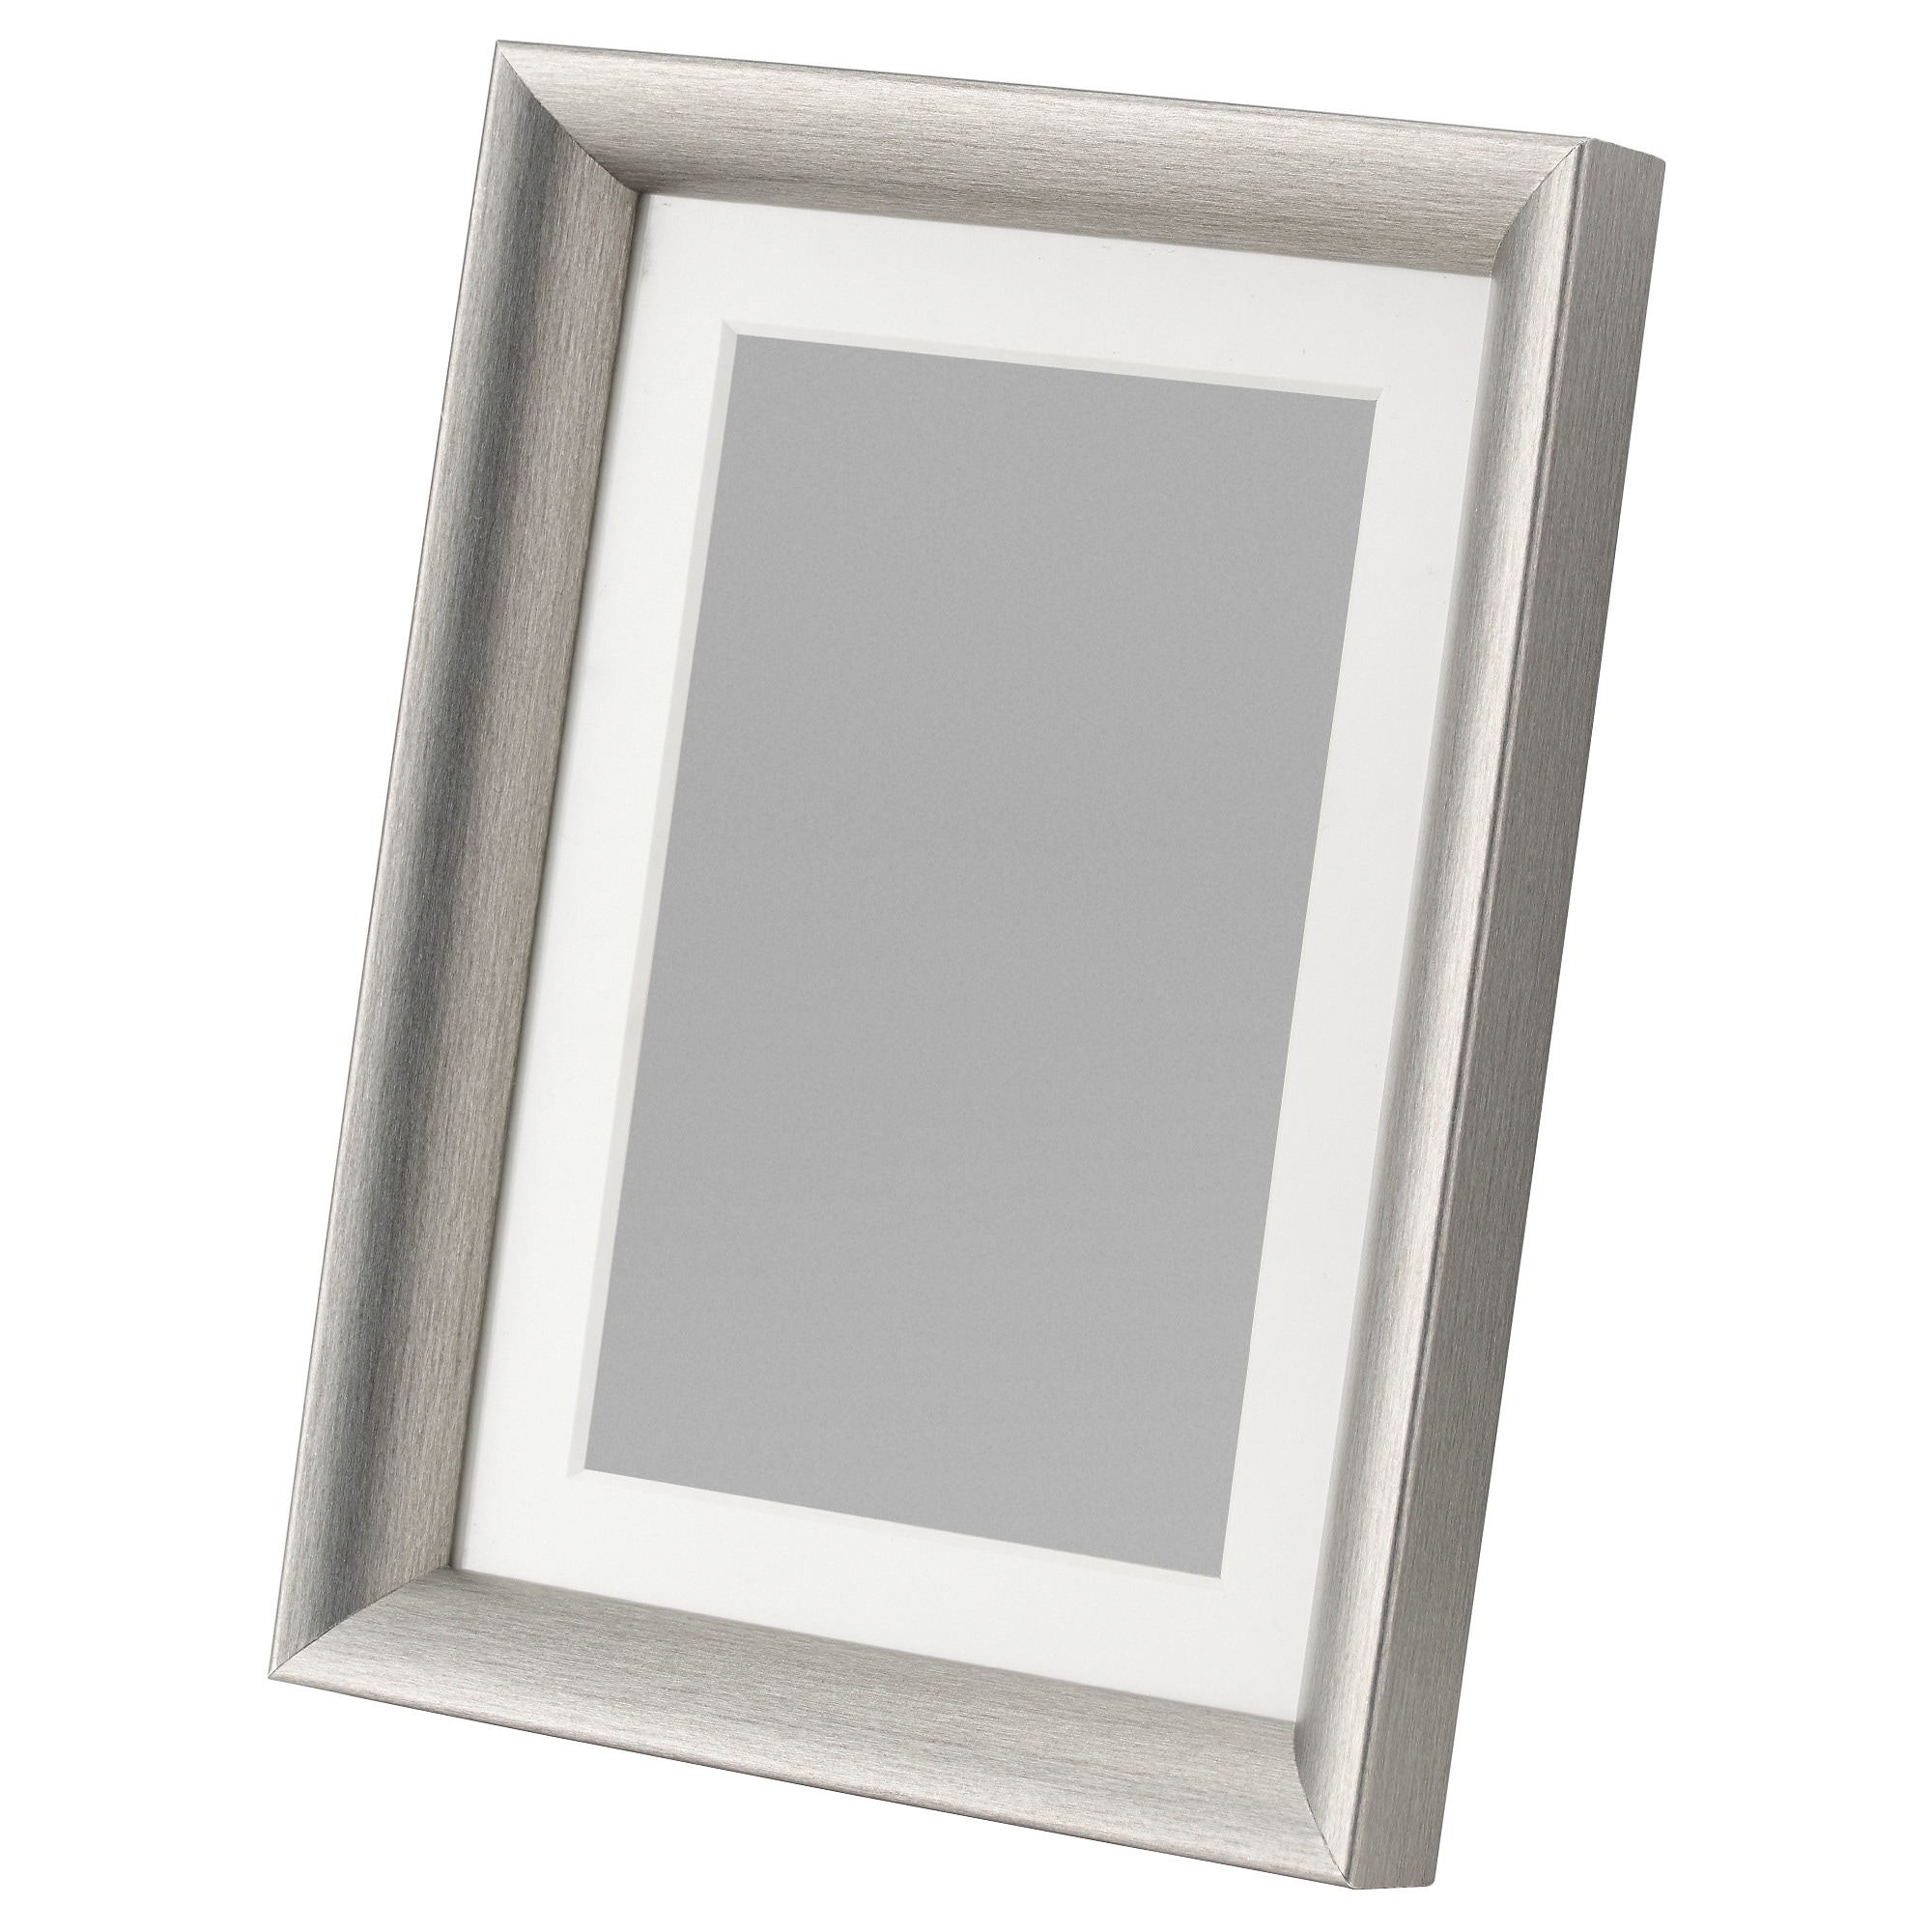 Silverhjden frame ikea inter ikea systems bv 1999 2018 privacy policy jeuxipadfo Image collections